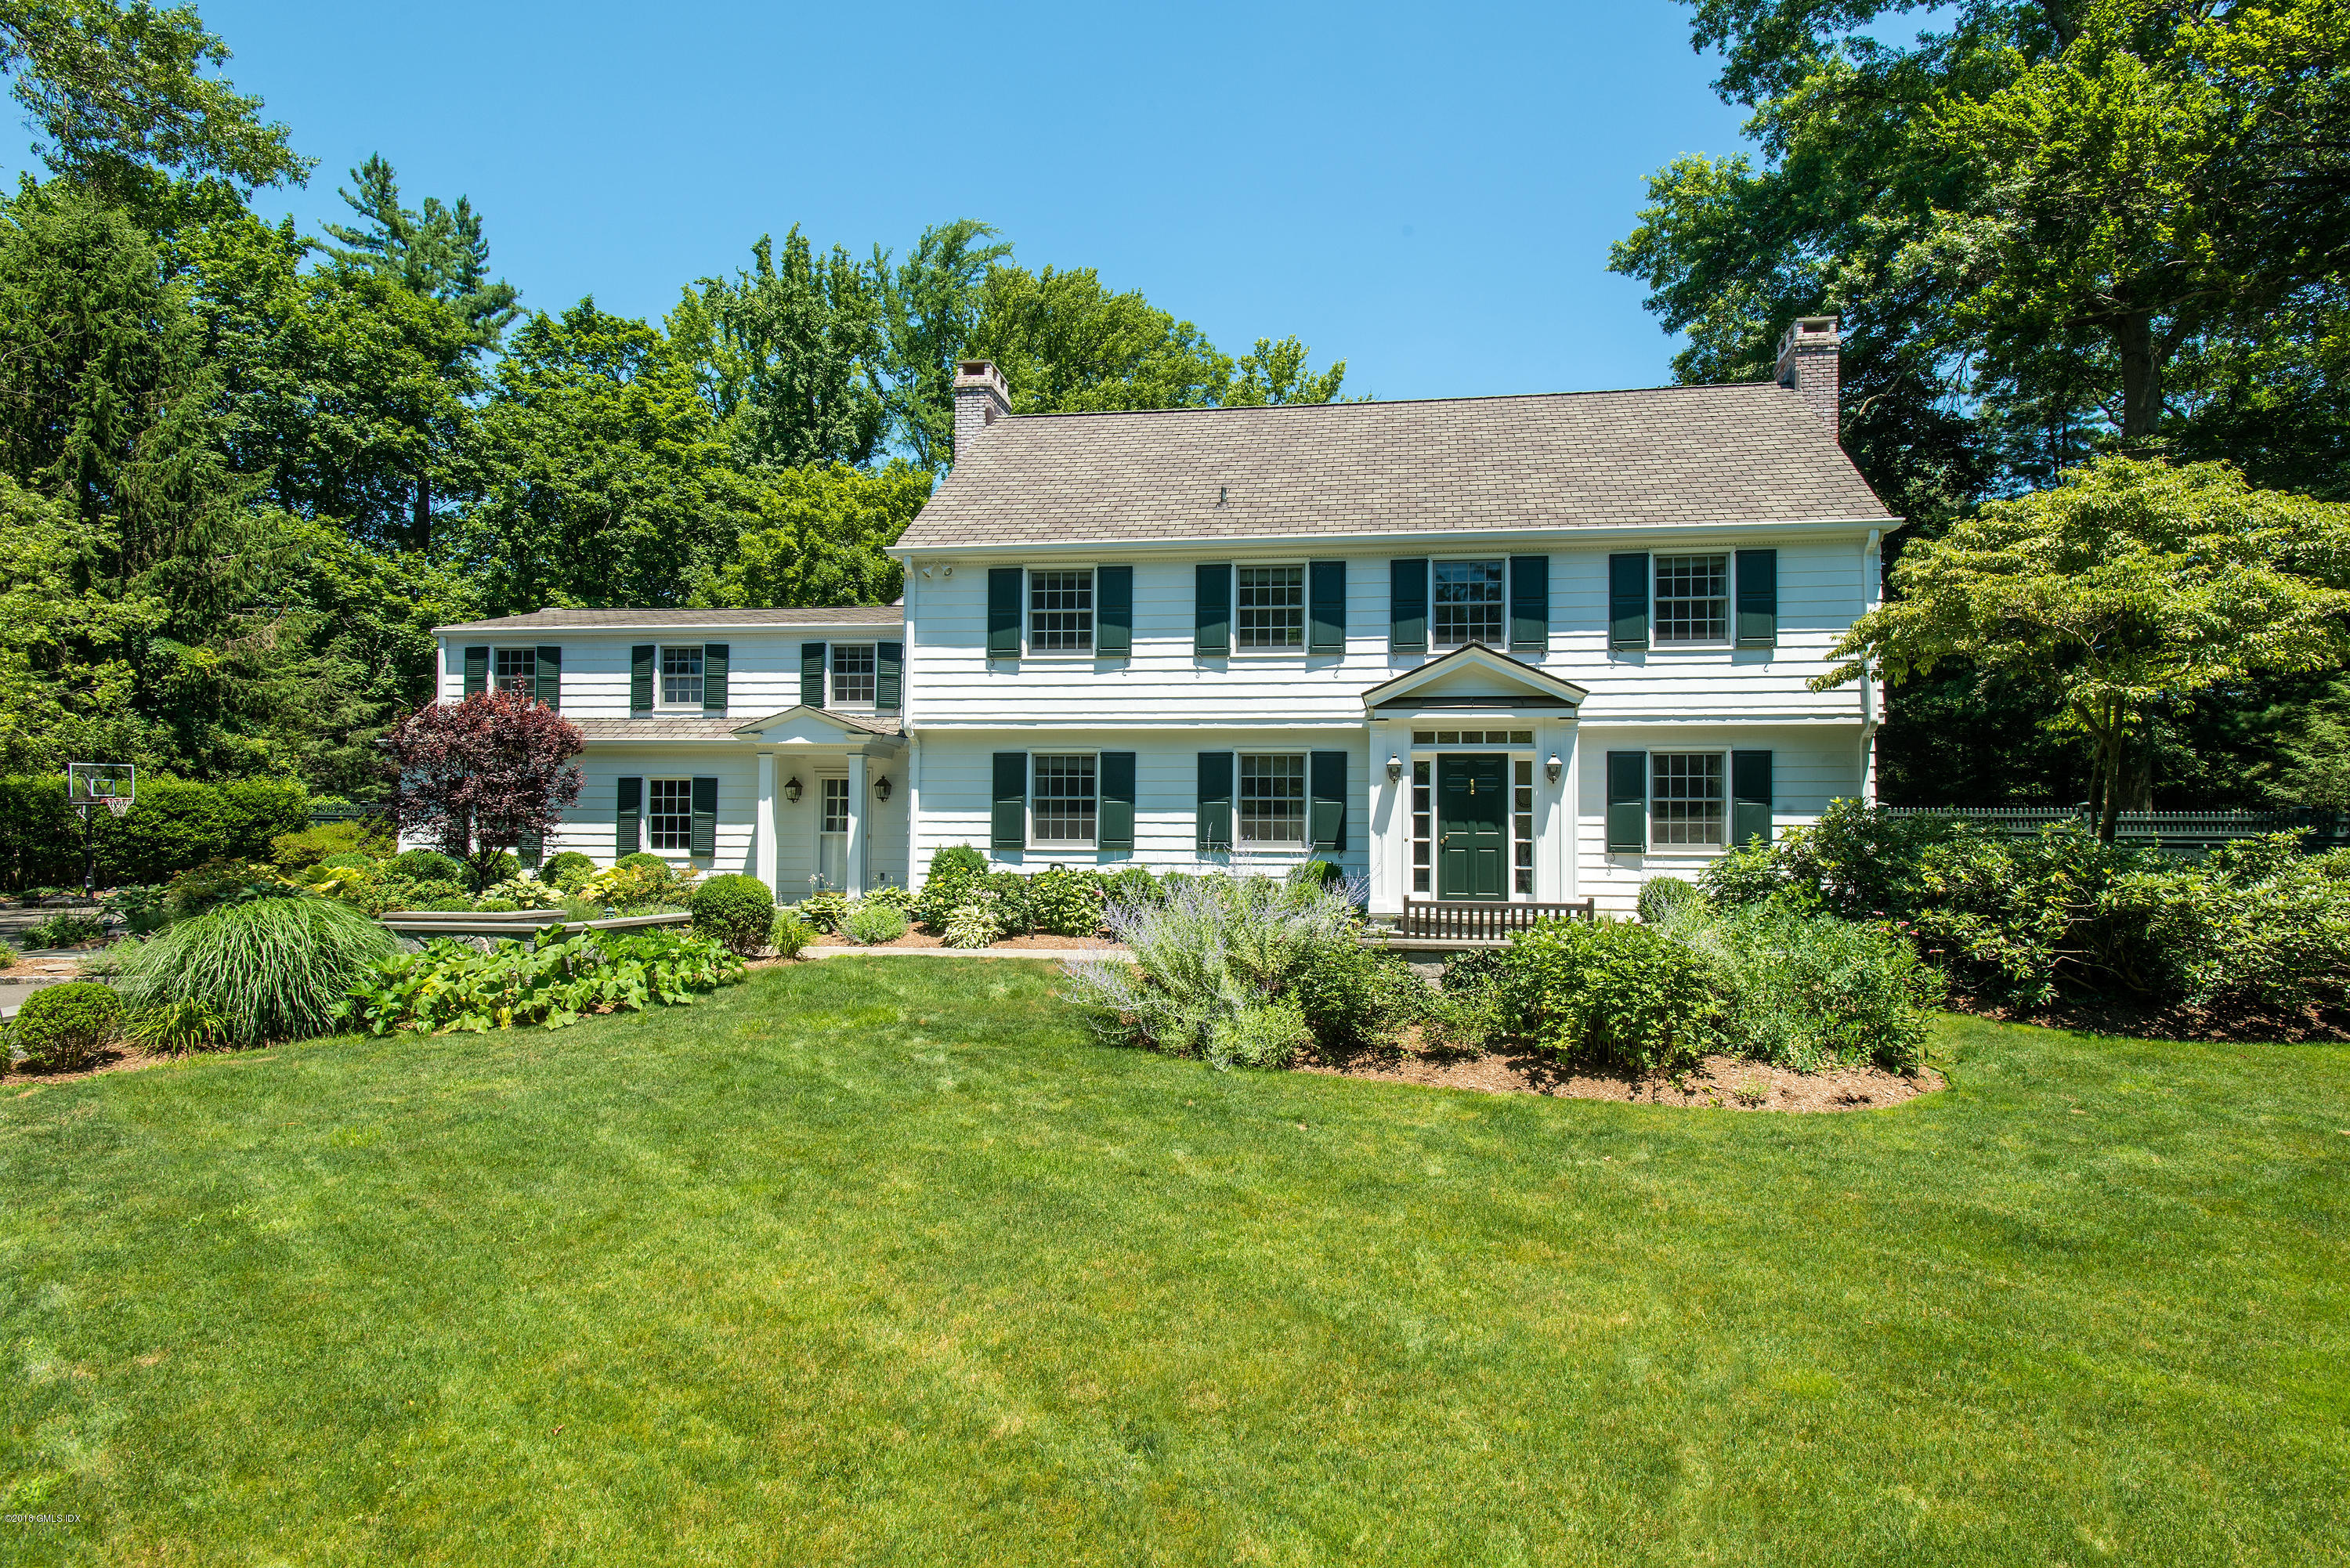 5 Parsonage Road,Greenwich,Connecticut 06830,5 Bedrooms Bedrooms,6 BathroomsBathrooms,Single family,Parsonage,104281